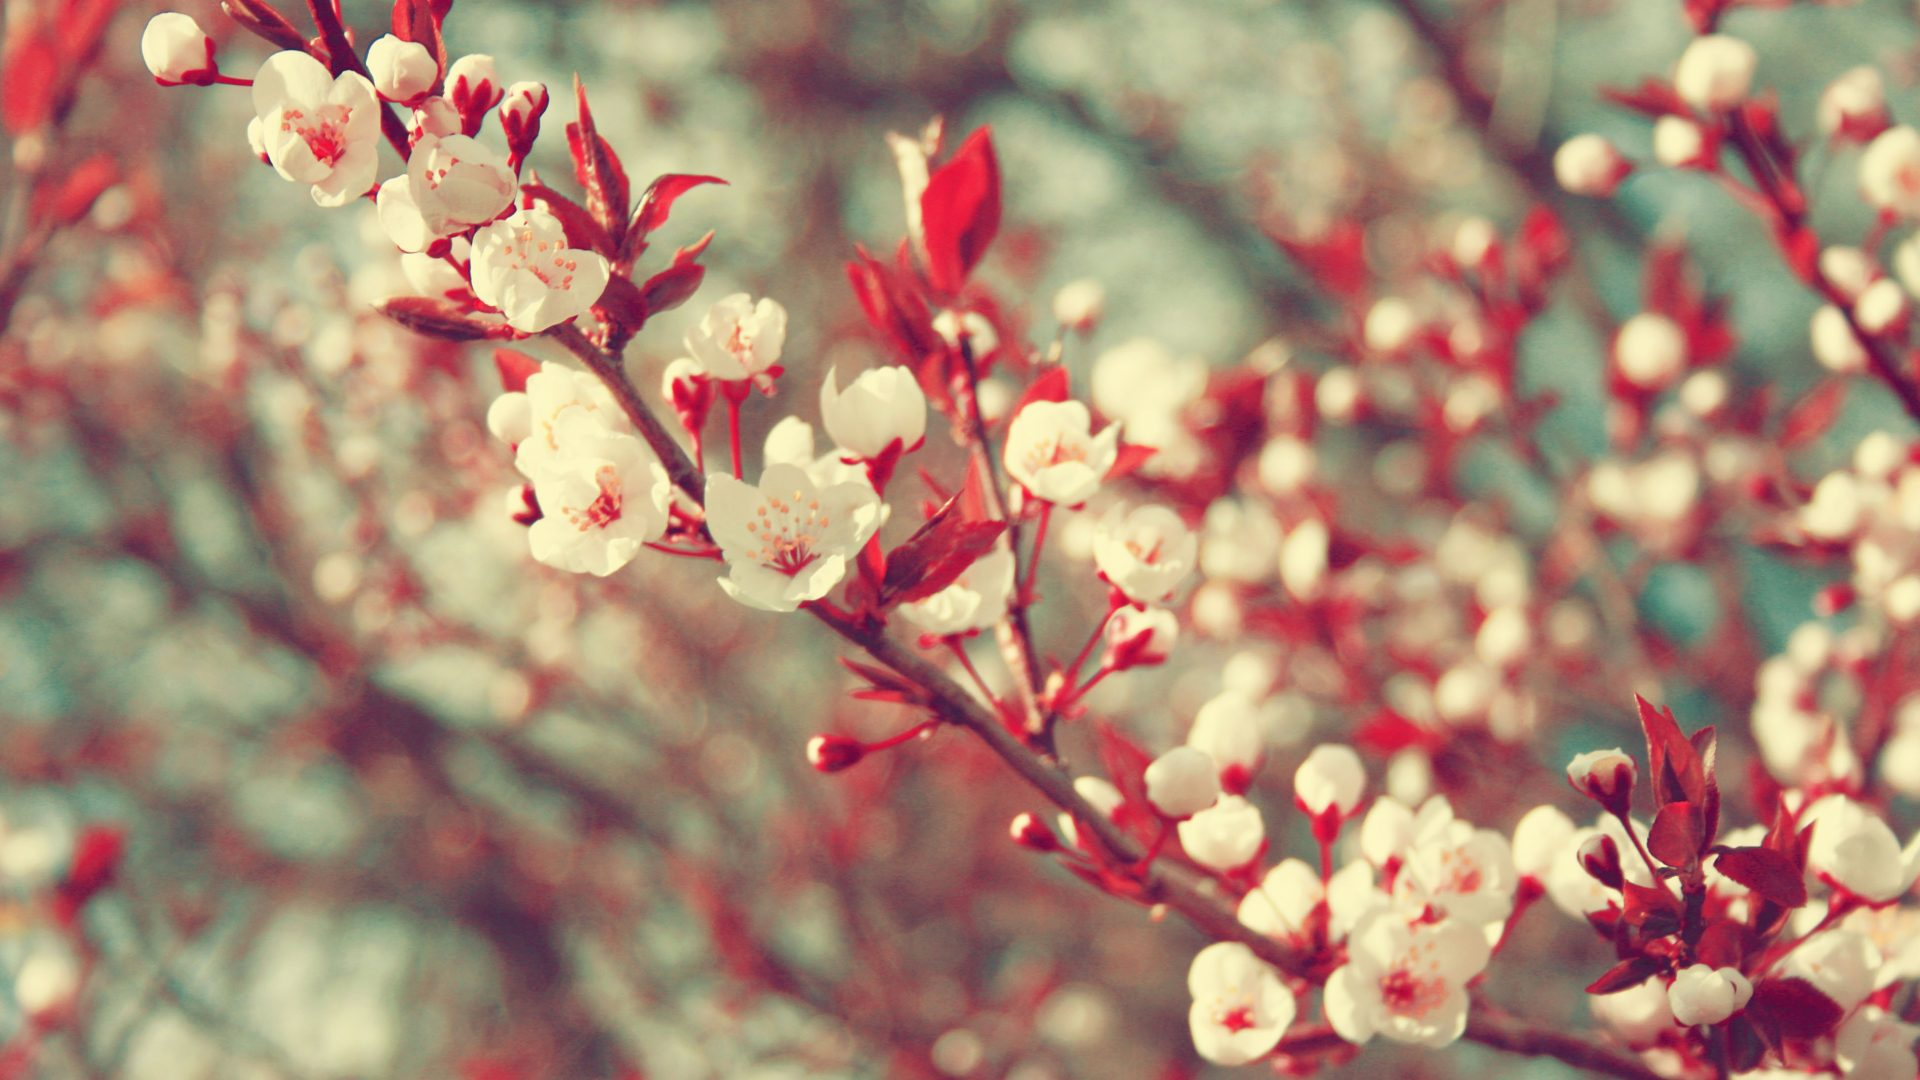 Wallpaper Tumblr Vintage For Iphone Awesome Spring 1063494